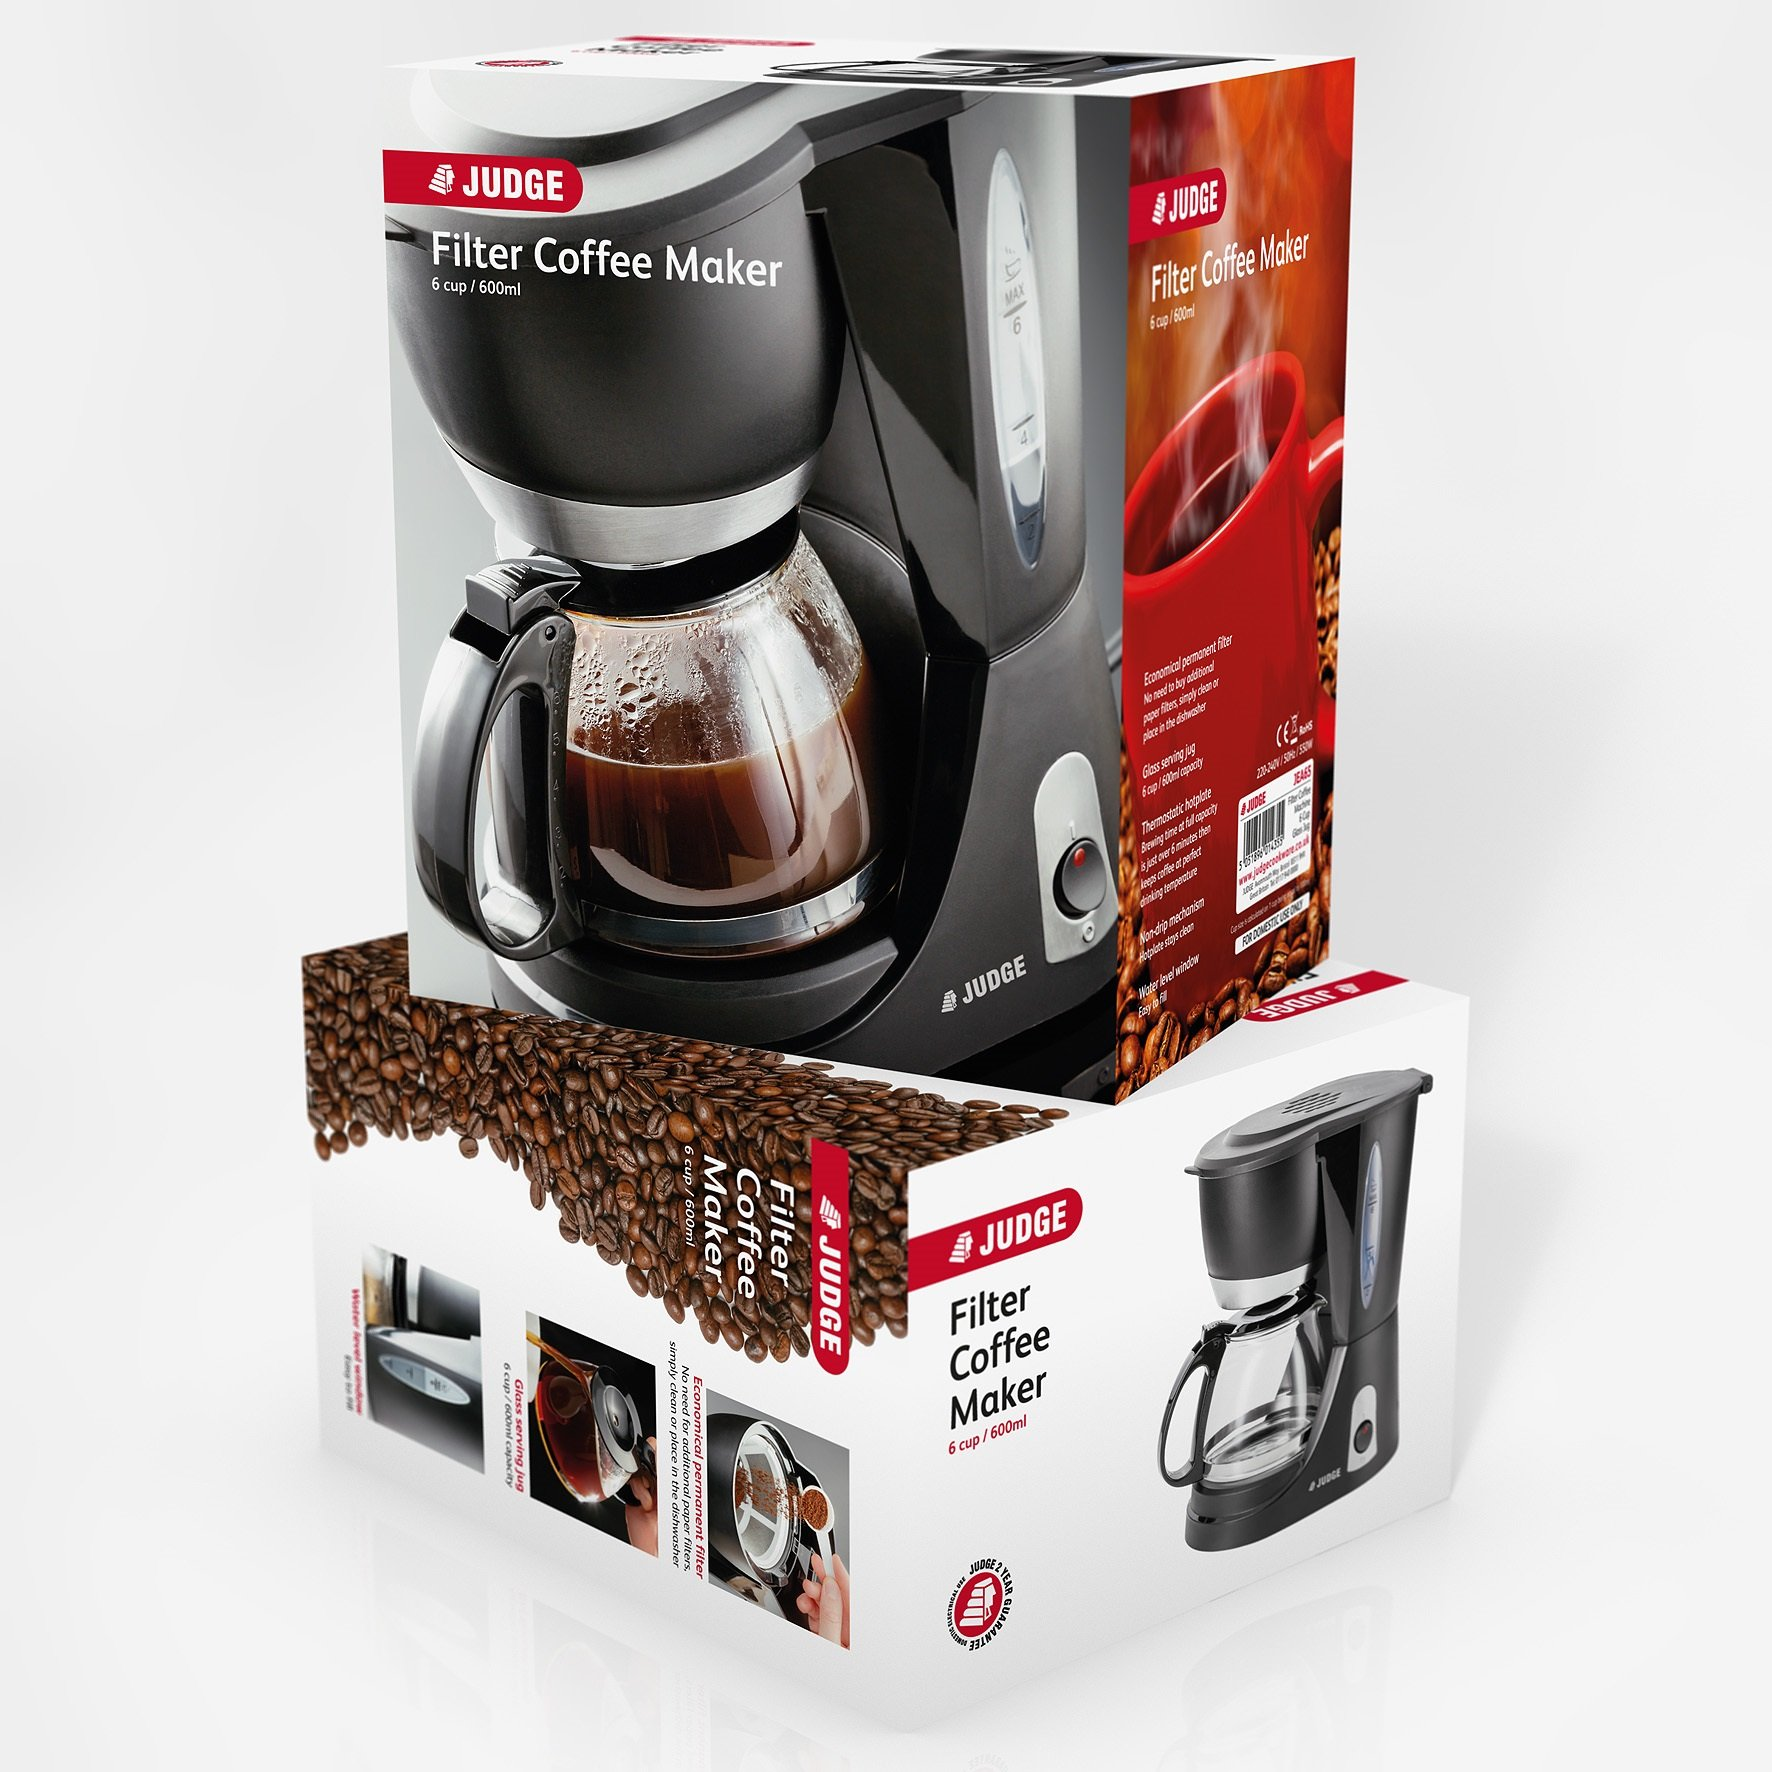 Judge Electricals Filter Coffee Maker 6 Cup 600ml At